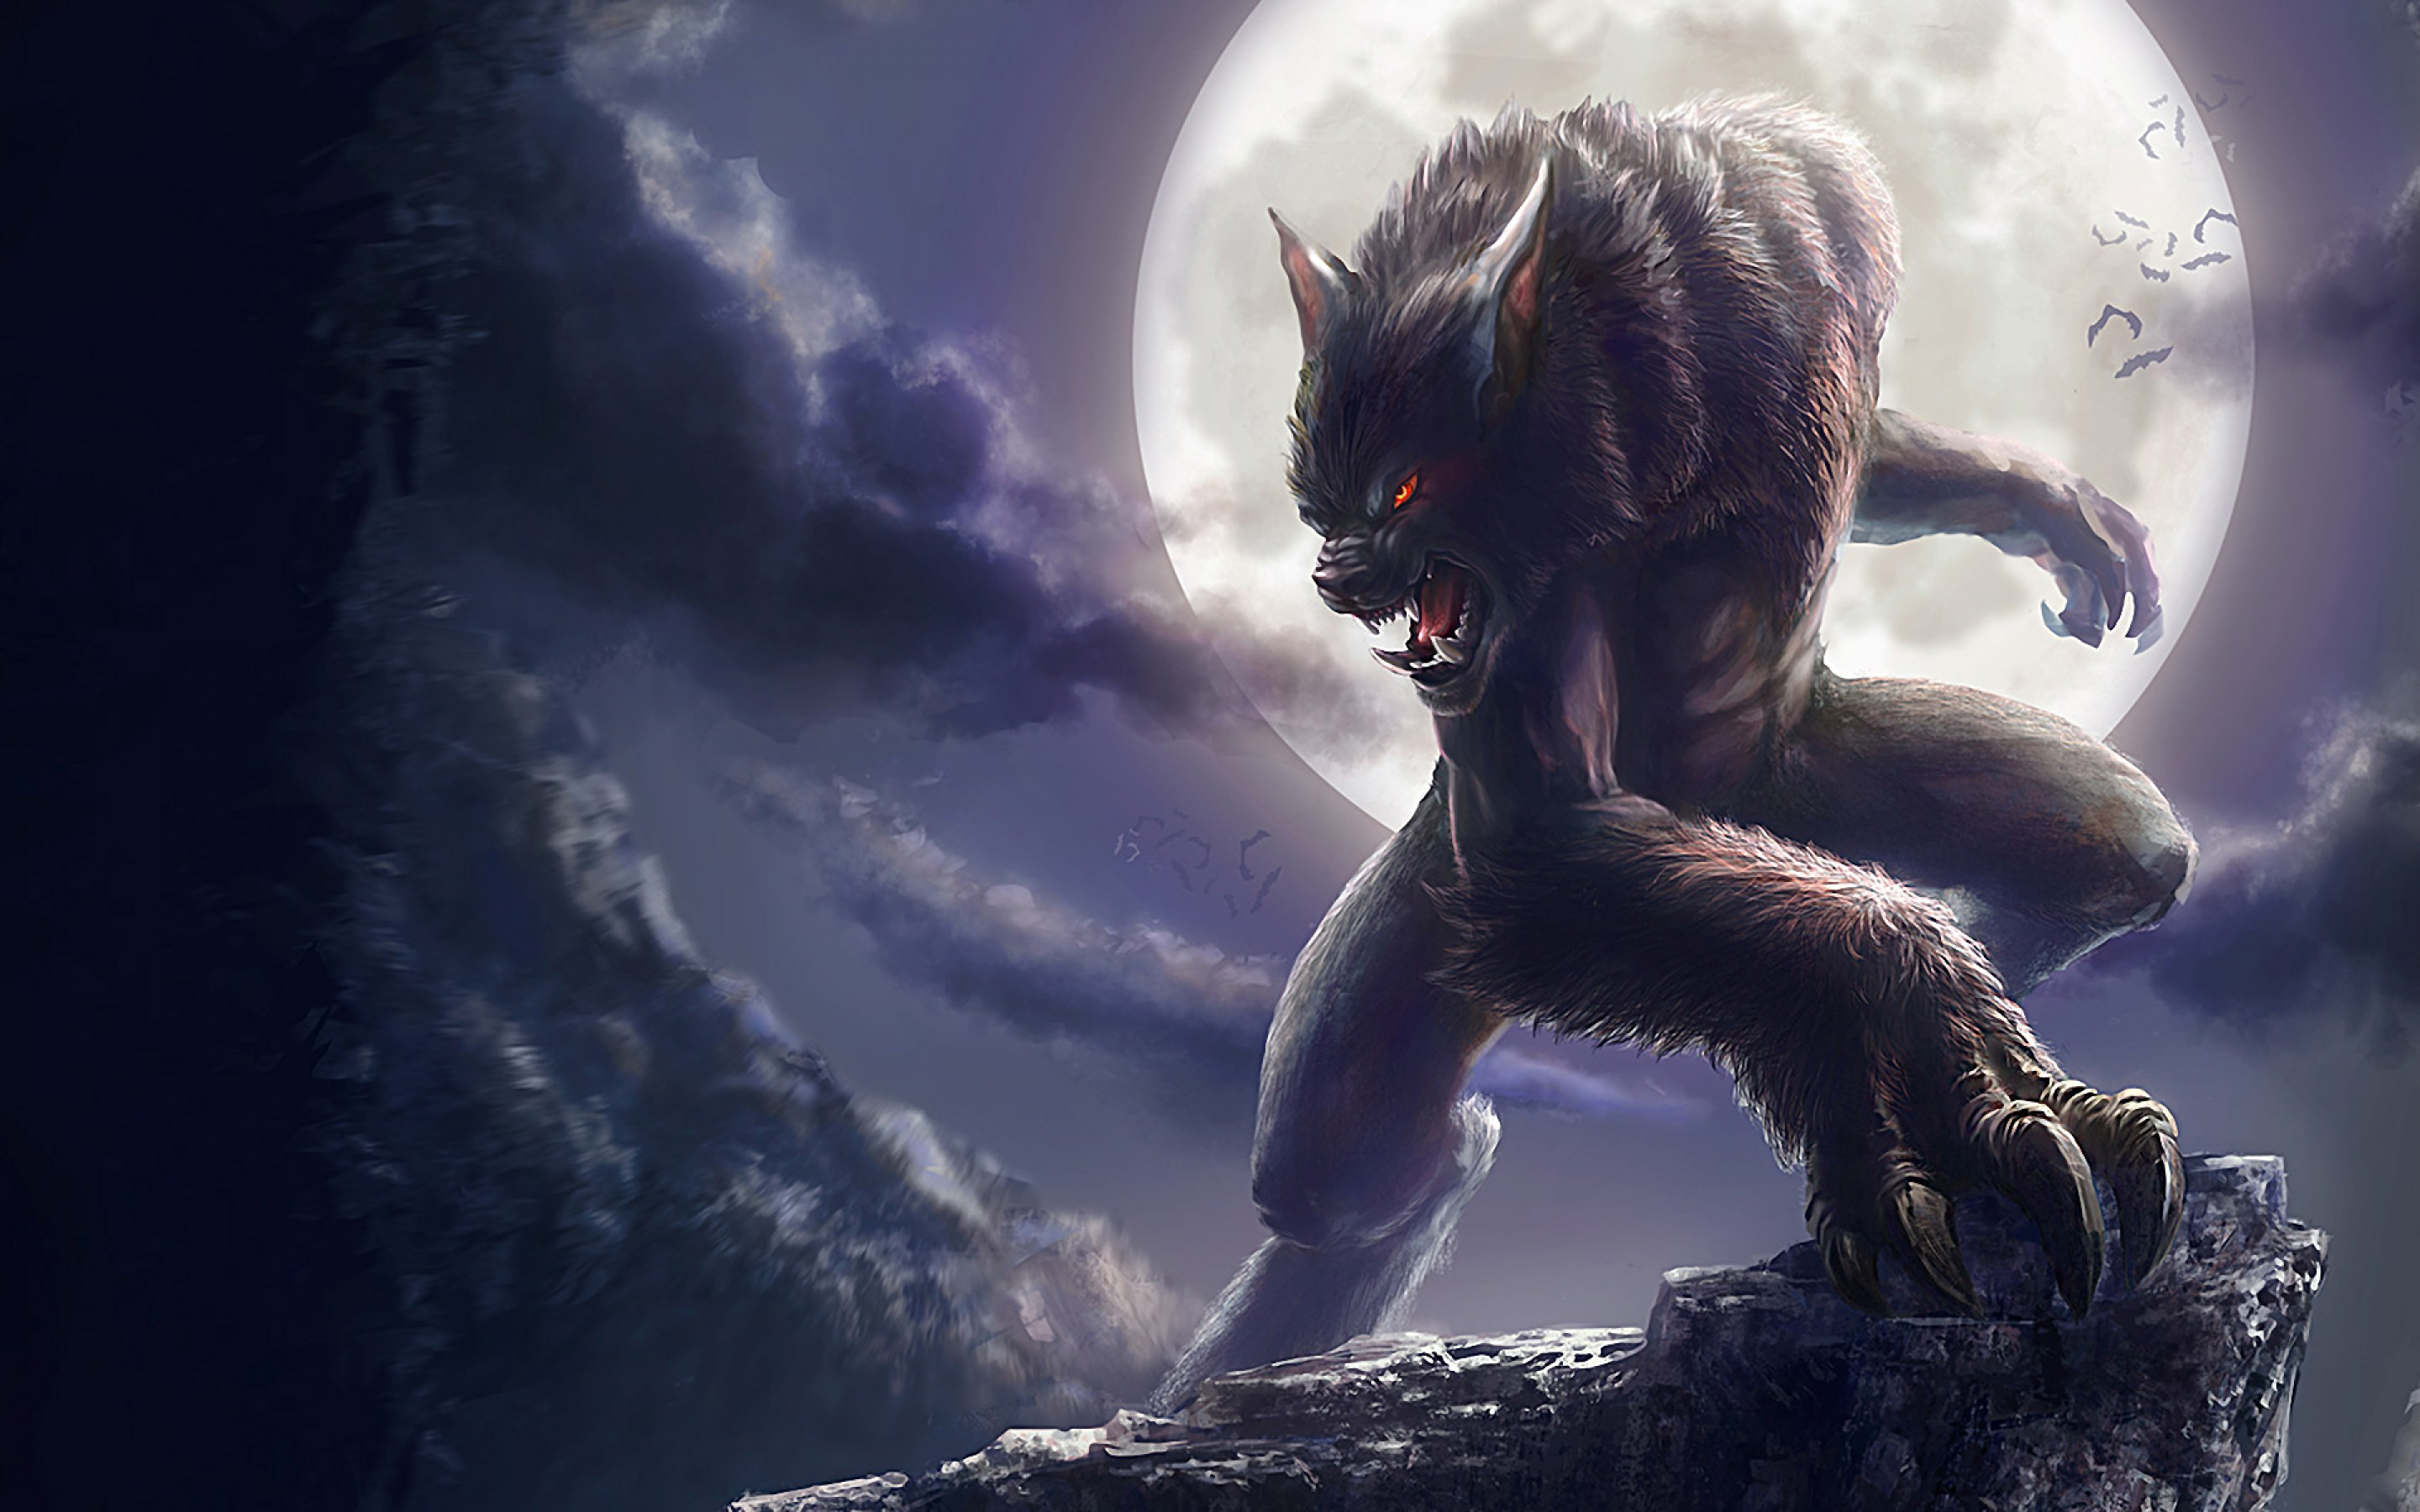 Wallpaper 3d 1080p Free Download For Mobile Werewolf Wallpaper Art And Paintings Wallpaper Better